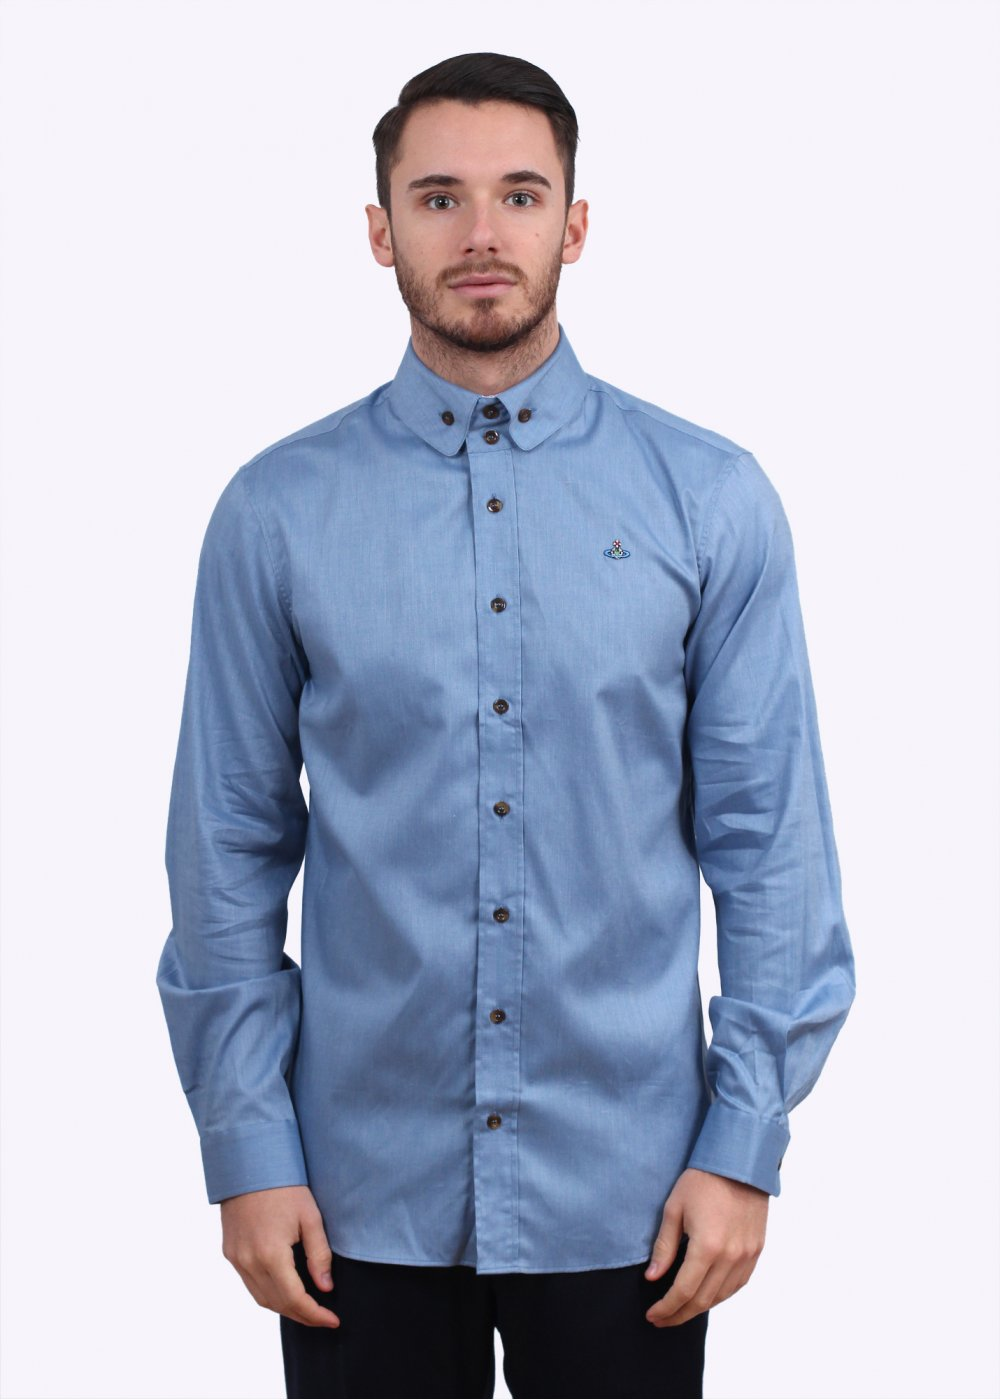 Vivienne westwood 2 button collar shirt blue for Mens button collar shirts